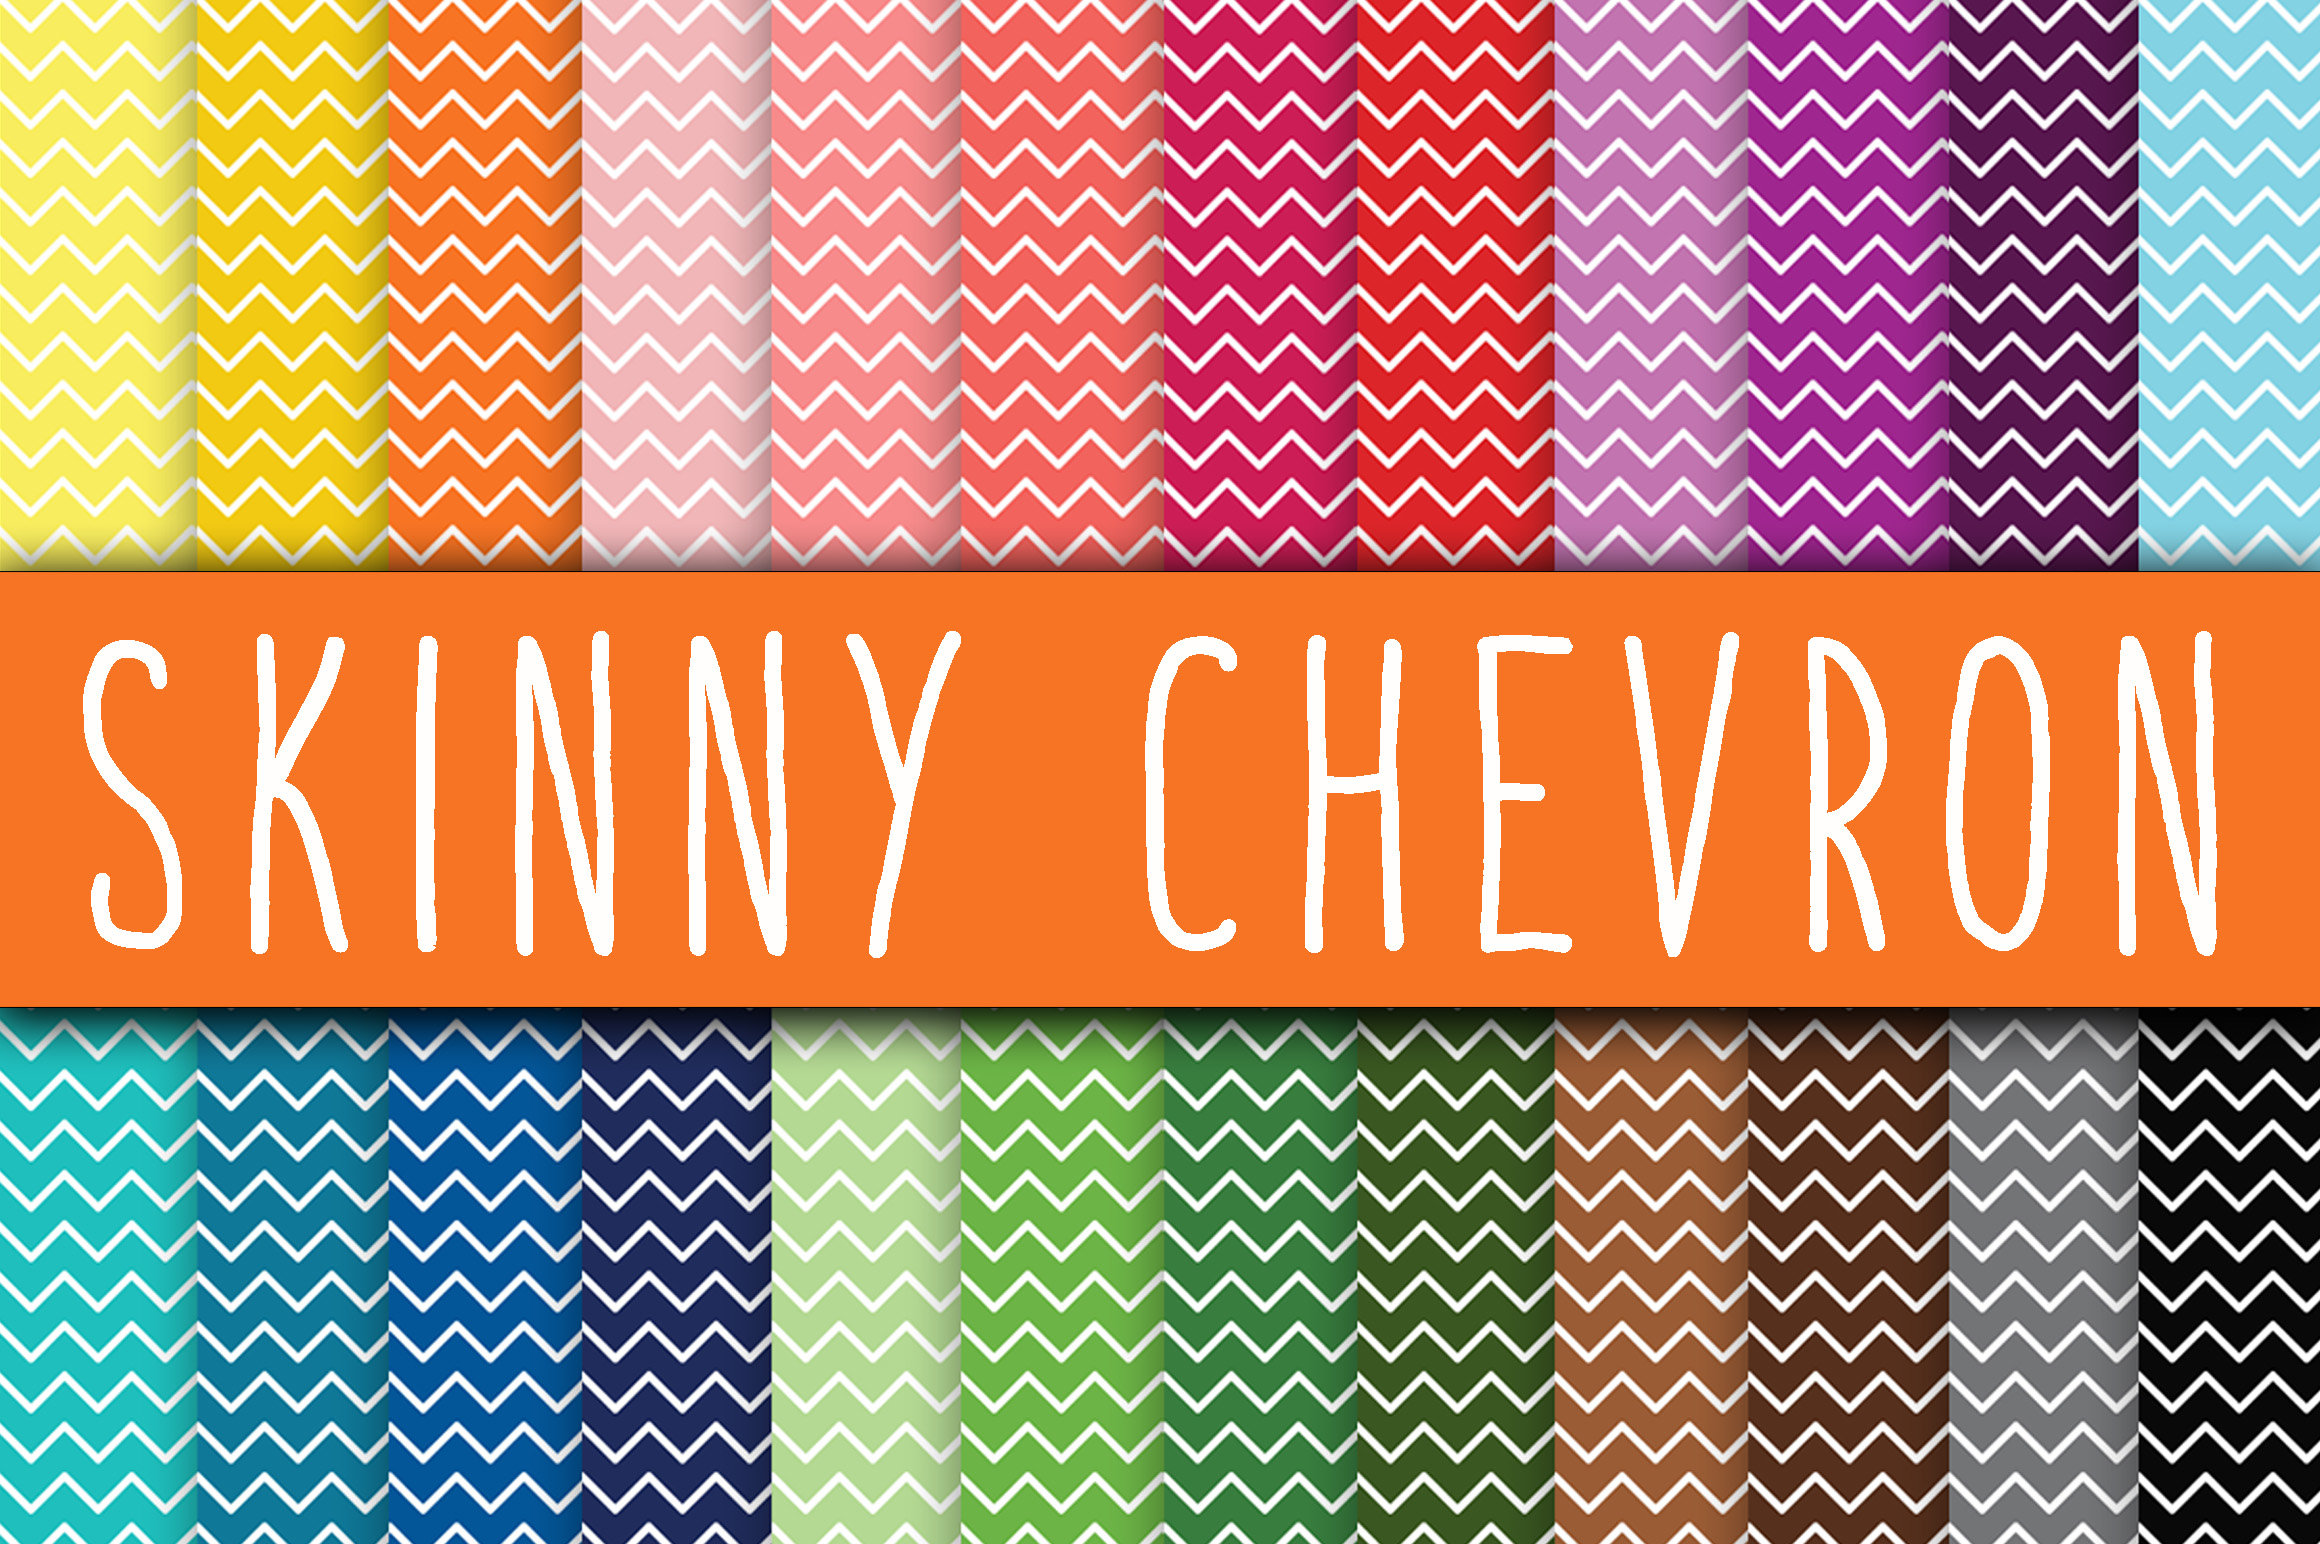 Skinny Chevron Digital Paper Graphic Backgrounds By oldmarketdesigns